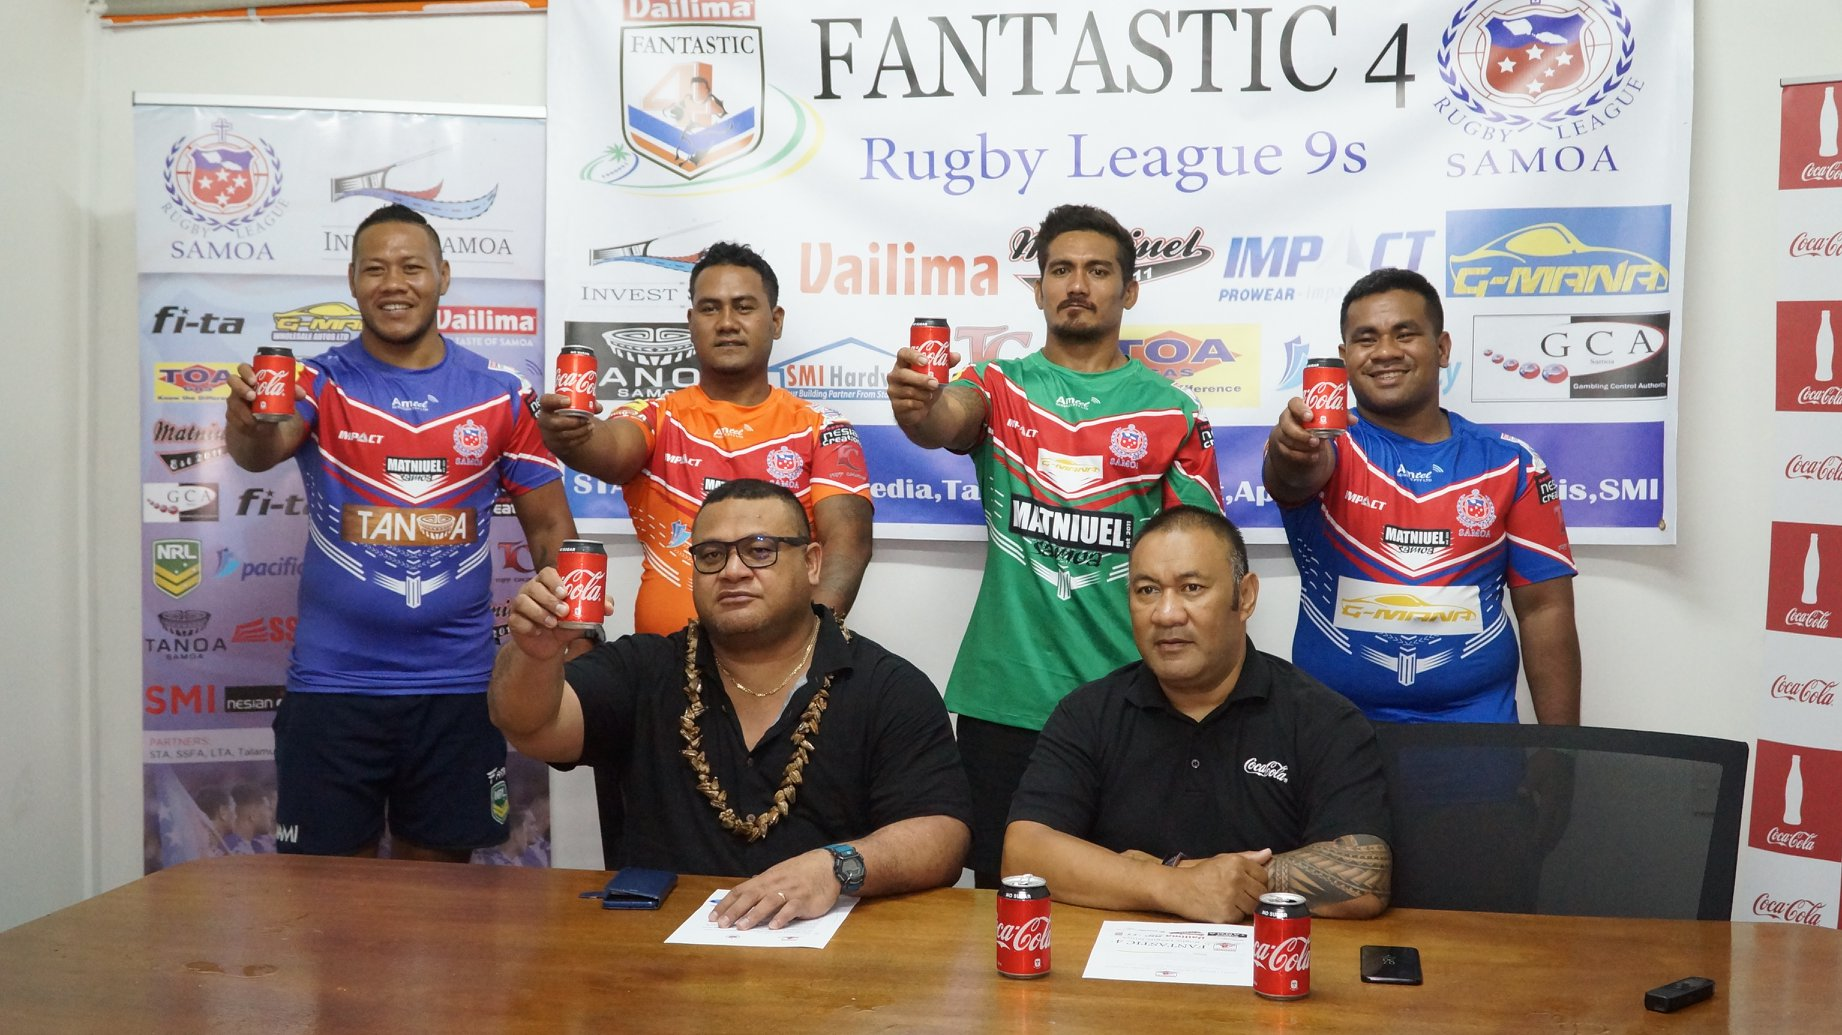 Apolima and Savai'i lead after first round in Fantastic Four 9s